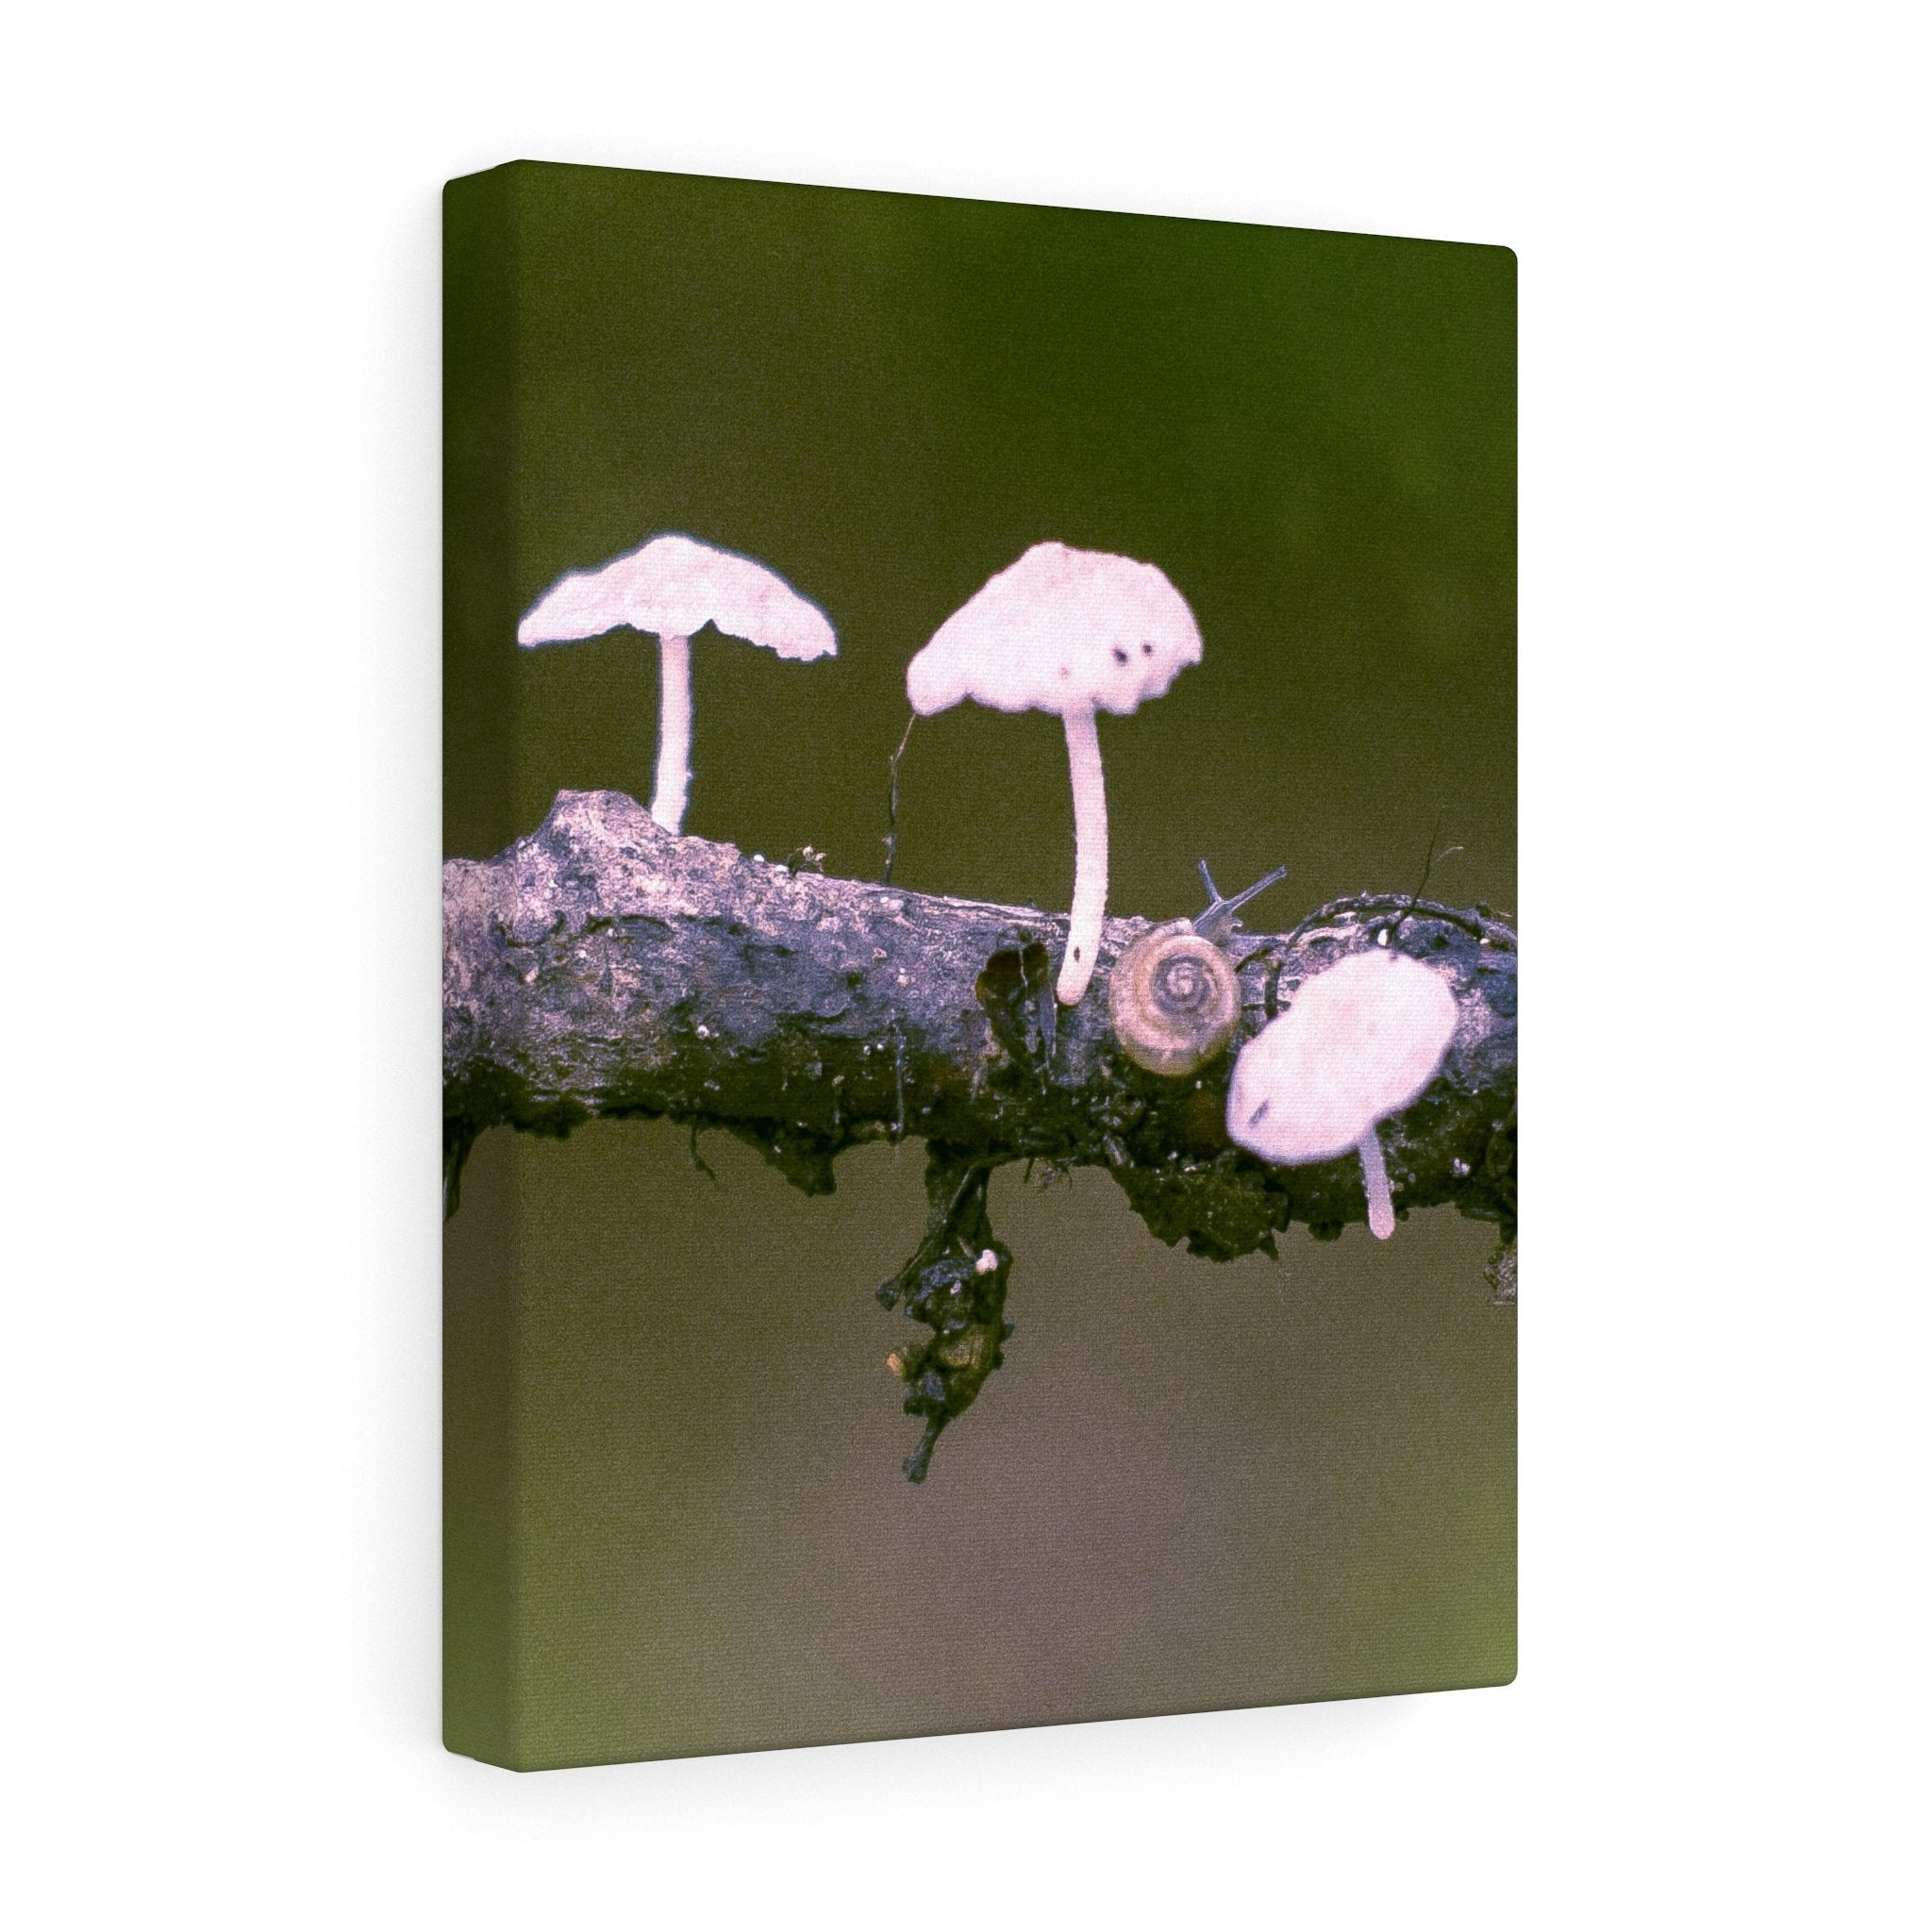 Snail on a Log Stretched canvas 11″ × 14″ / Stretched Canvas (1.5